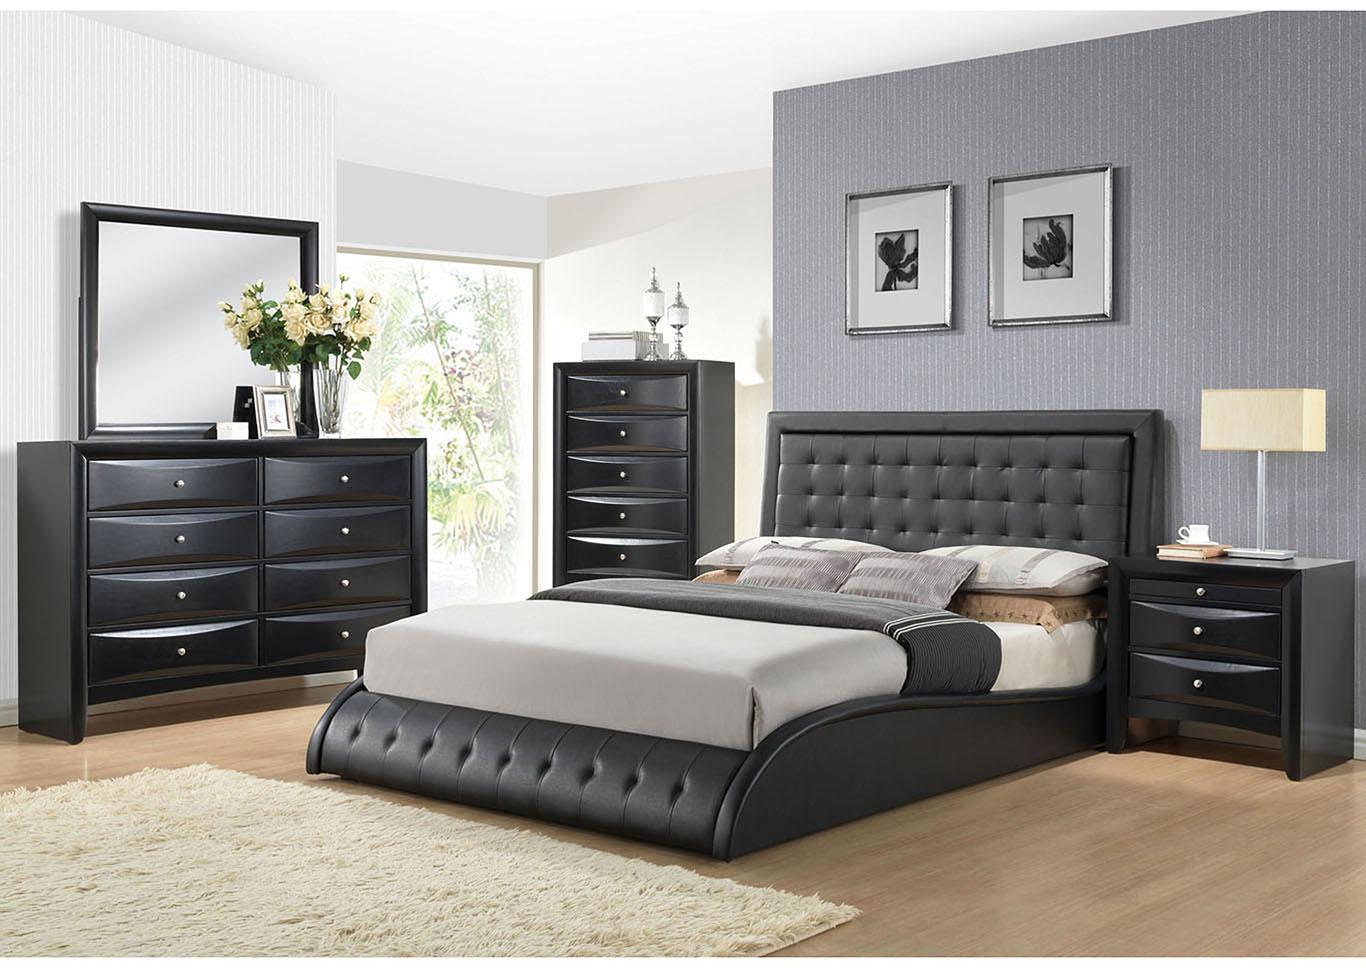 Tirrel Black Queen Bed,Acme